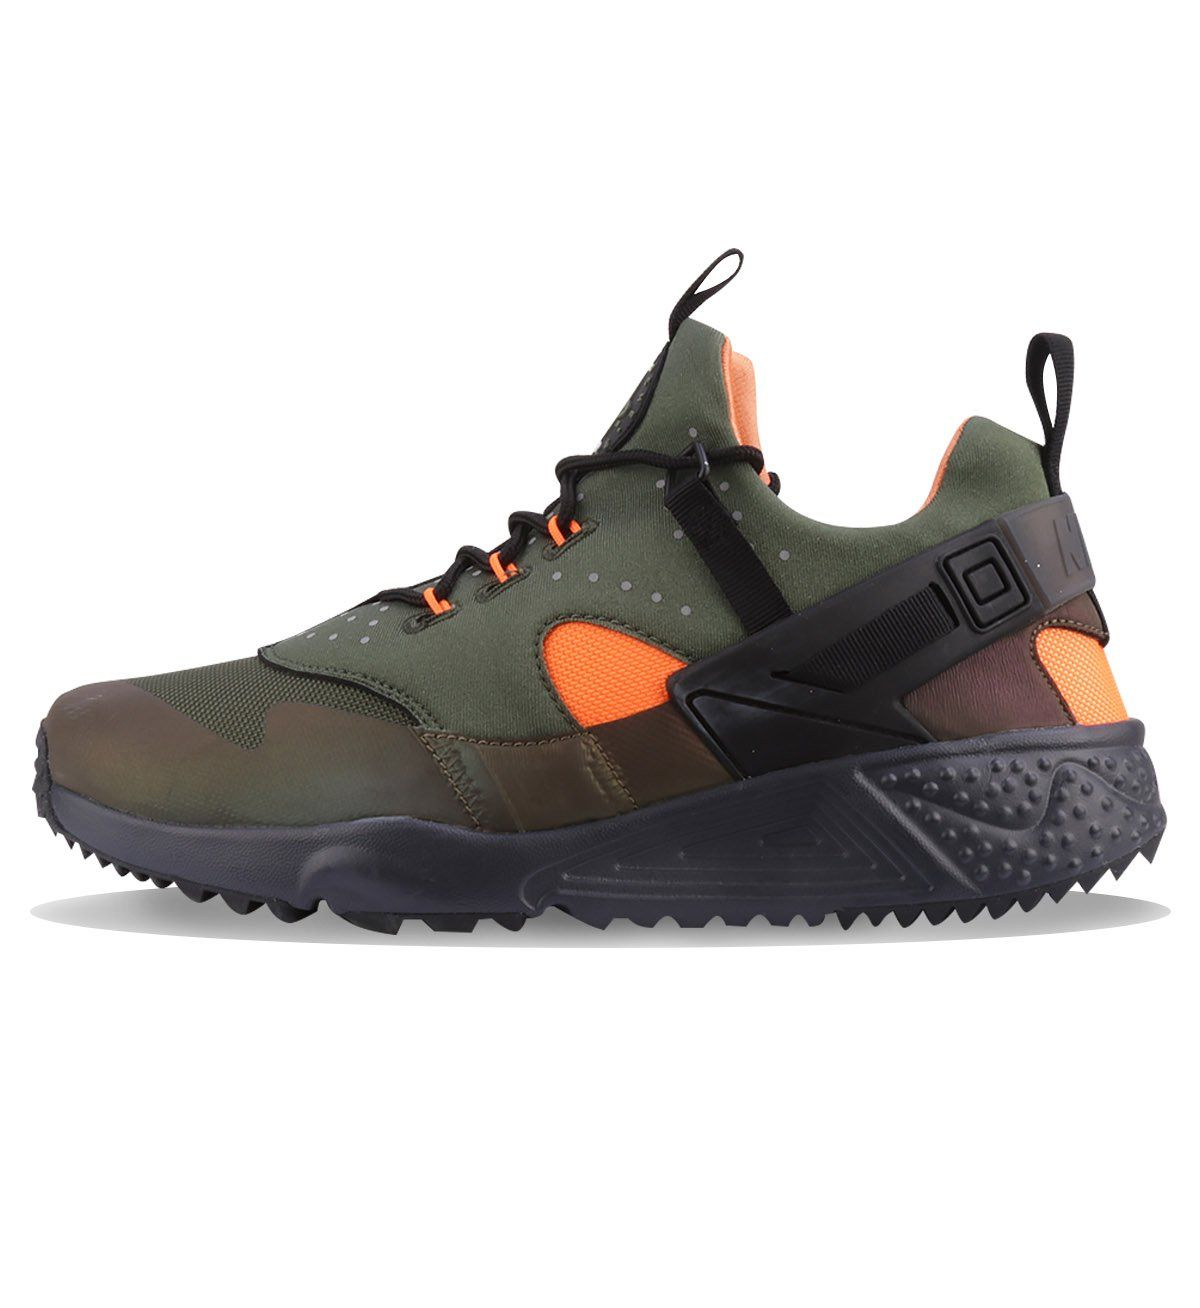 low priced a9539 33f22 Nike Air Huarache Utility Premium Carbon Green   Black   Orange   Anthrct -  Nike The Nike Air Huarache Utility Premium Men s Shoe is constructed in a  ...